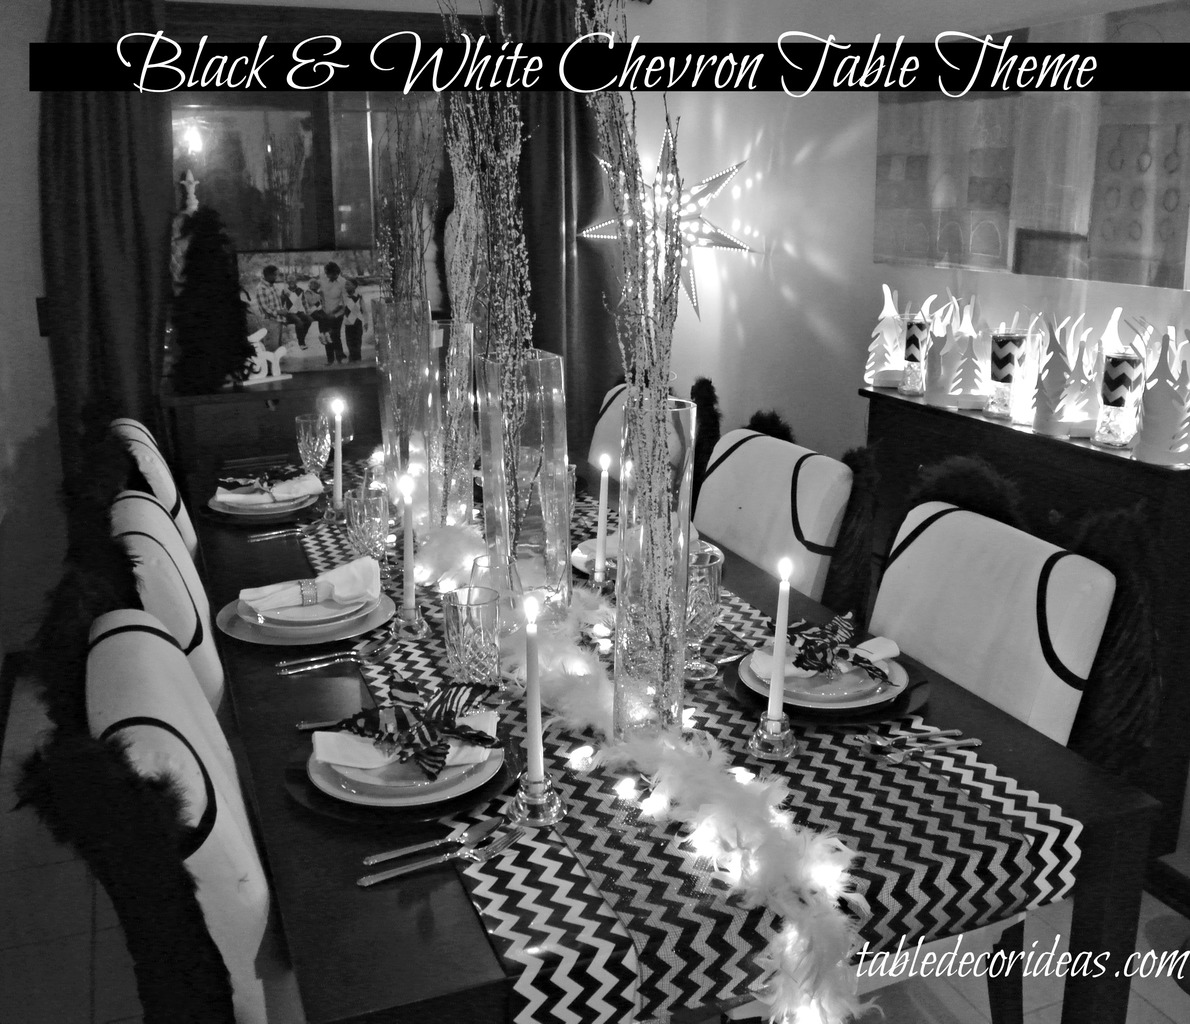 Black and White Chevron Theme